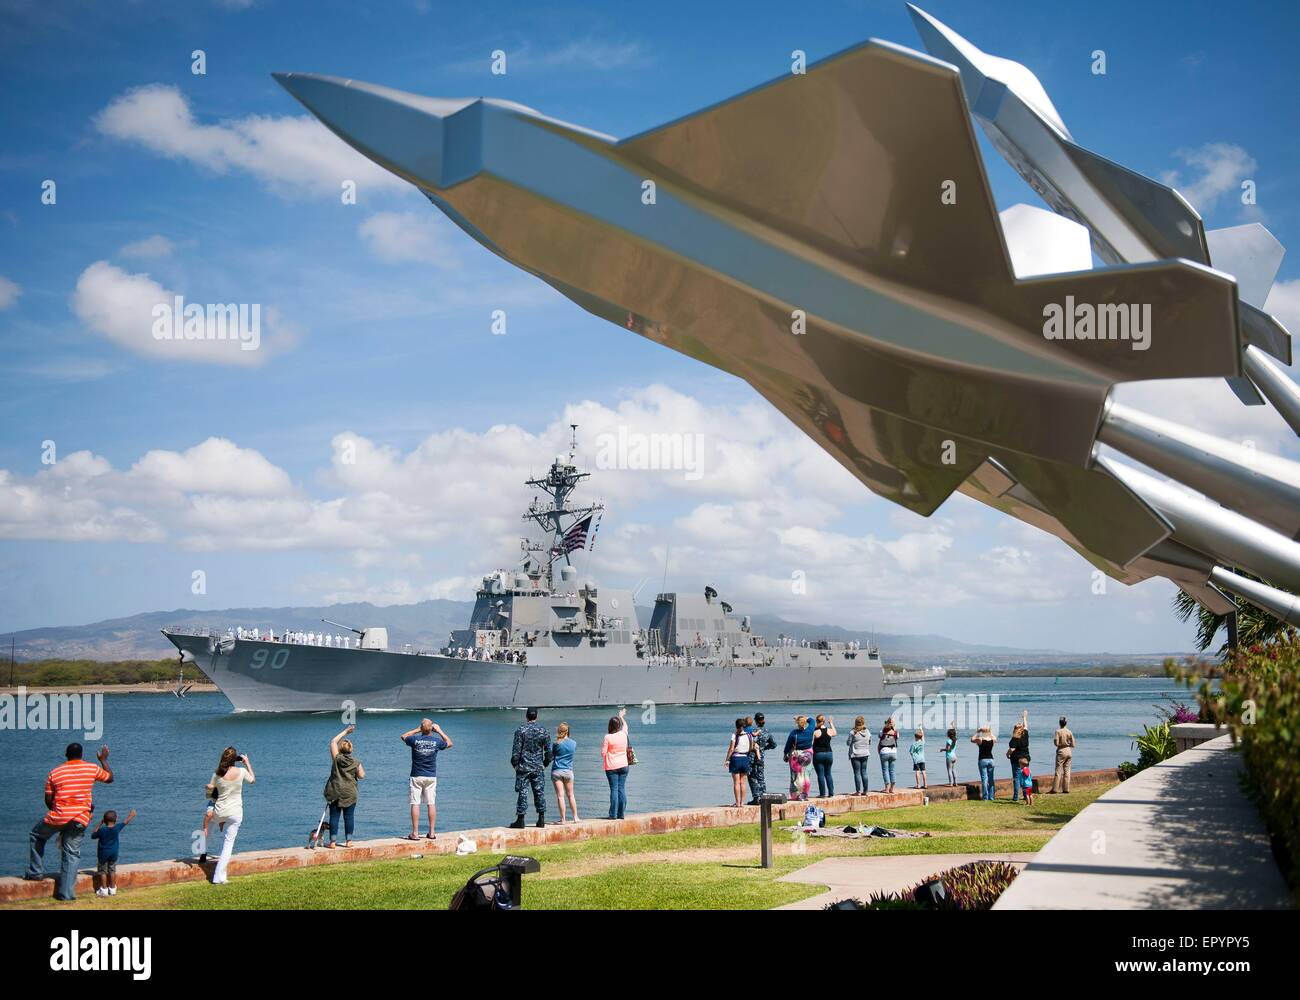 The U.S. Navy guided-missile destroyer USS Chafee departs Joint Base Pearl Harbor-Hickam for deployment May 18, - Stock Image